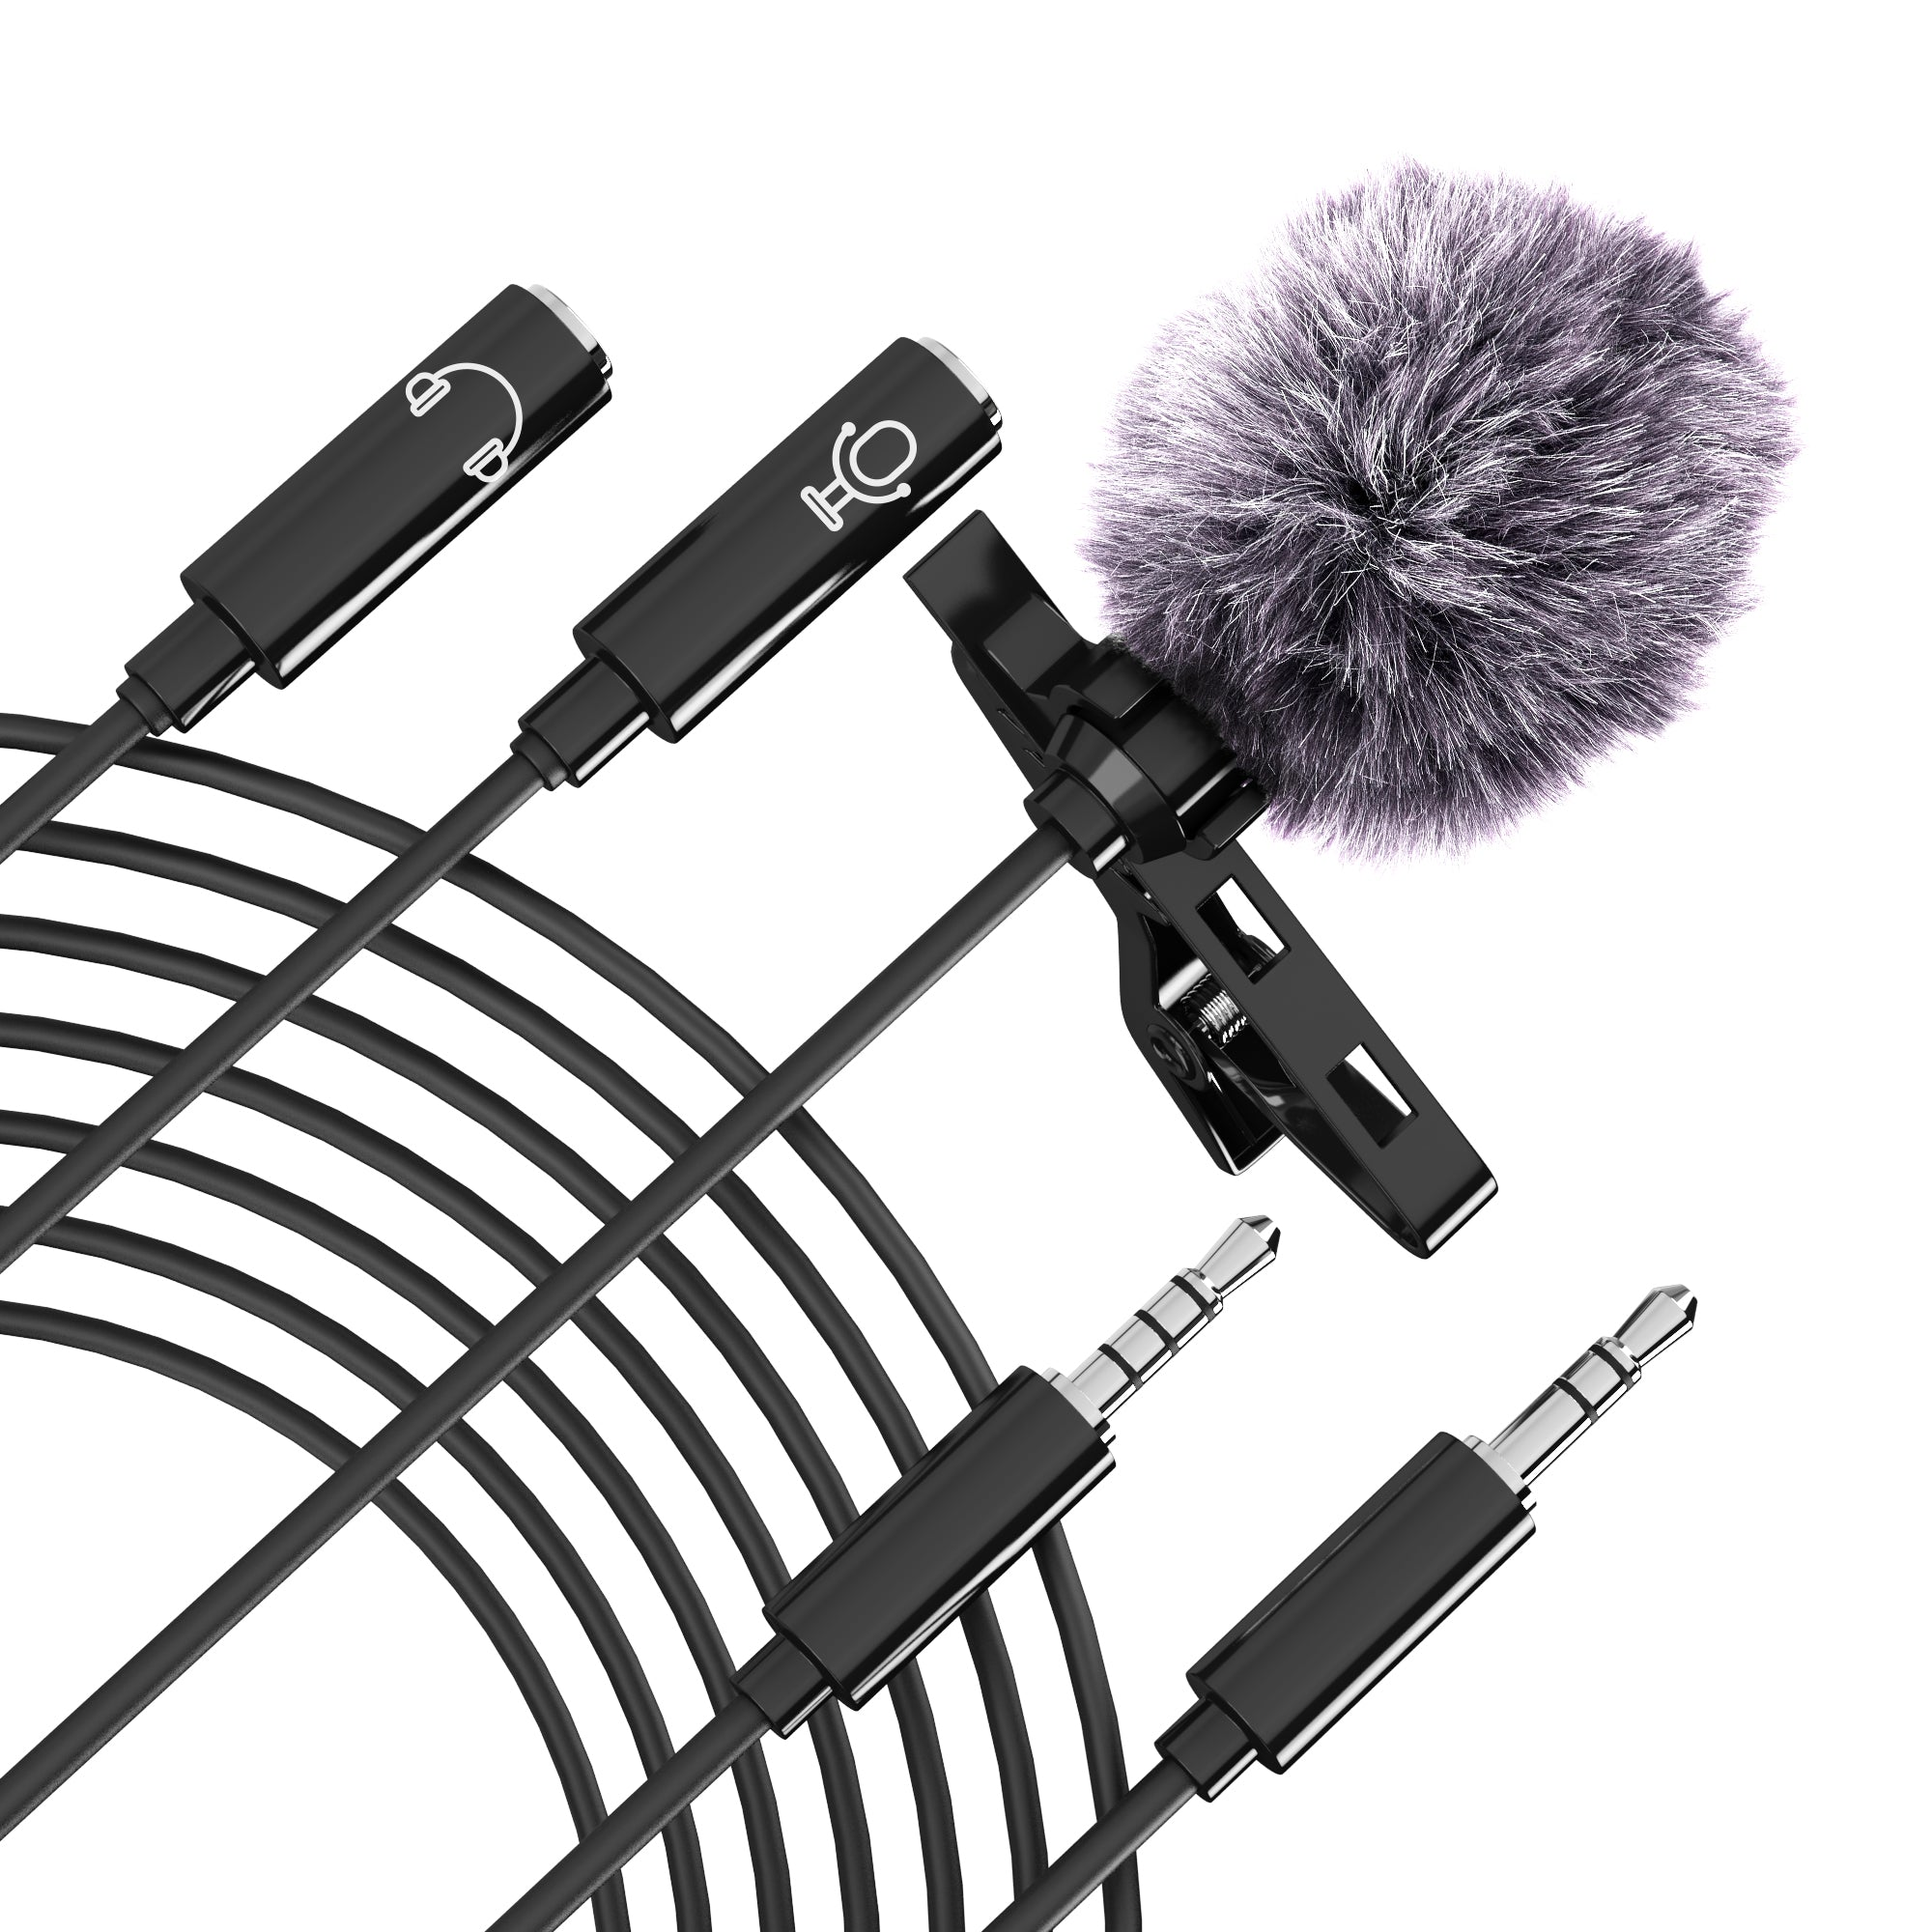 Lavalier Microphone with Enterview Splitter - STUFF 4 CAMERA